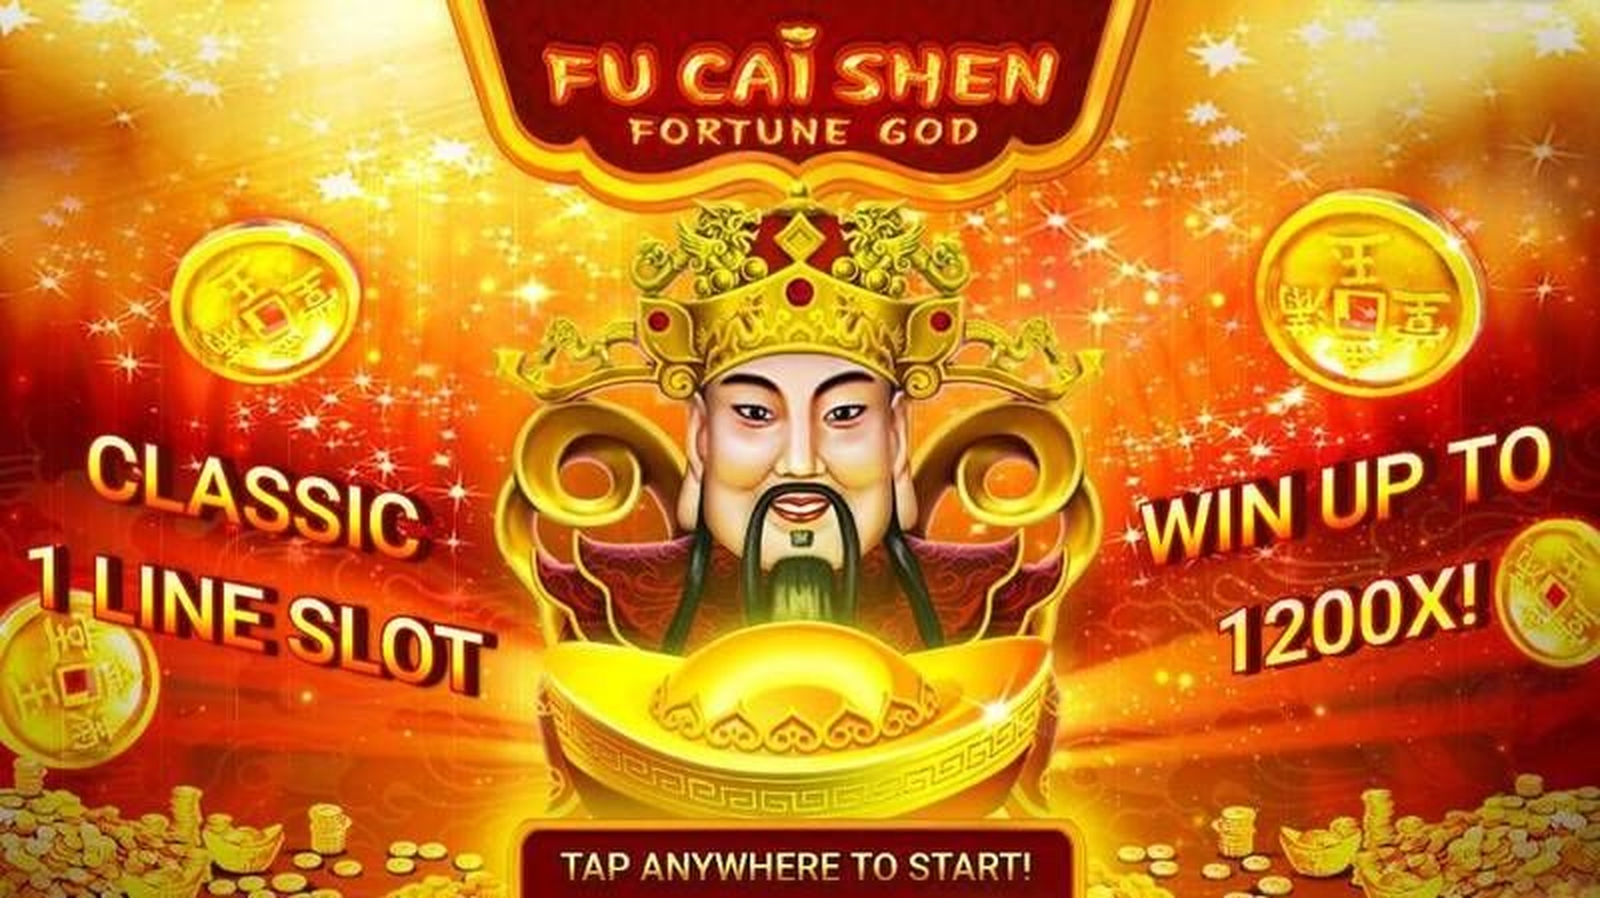 The Fu Cai Shen Online Slot Demo Game by Booongo